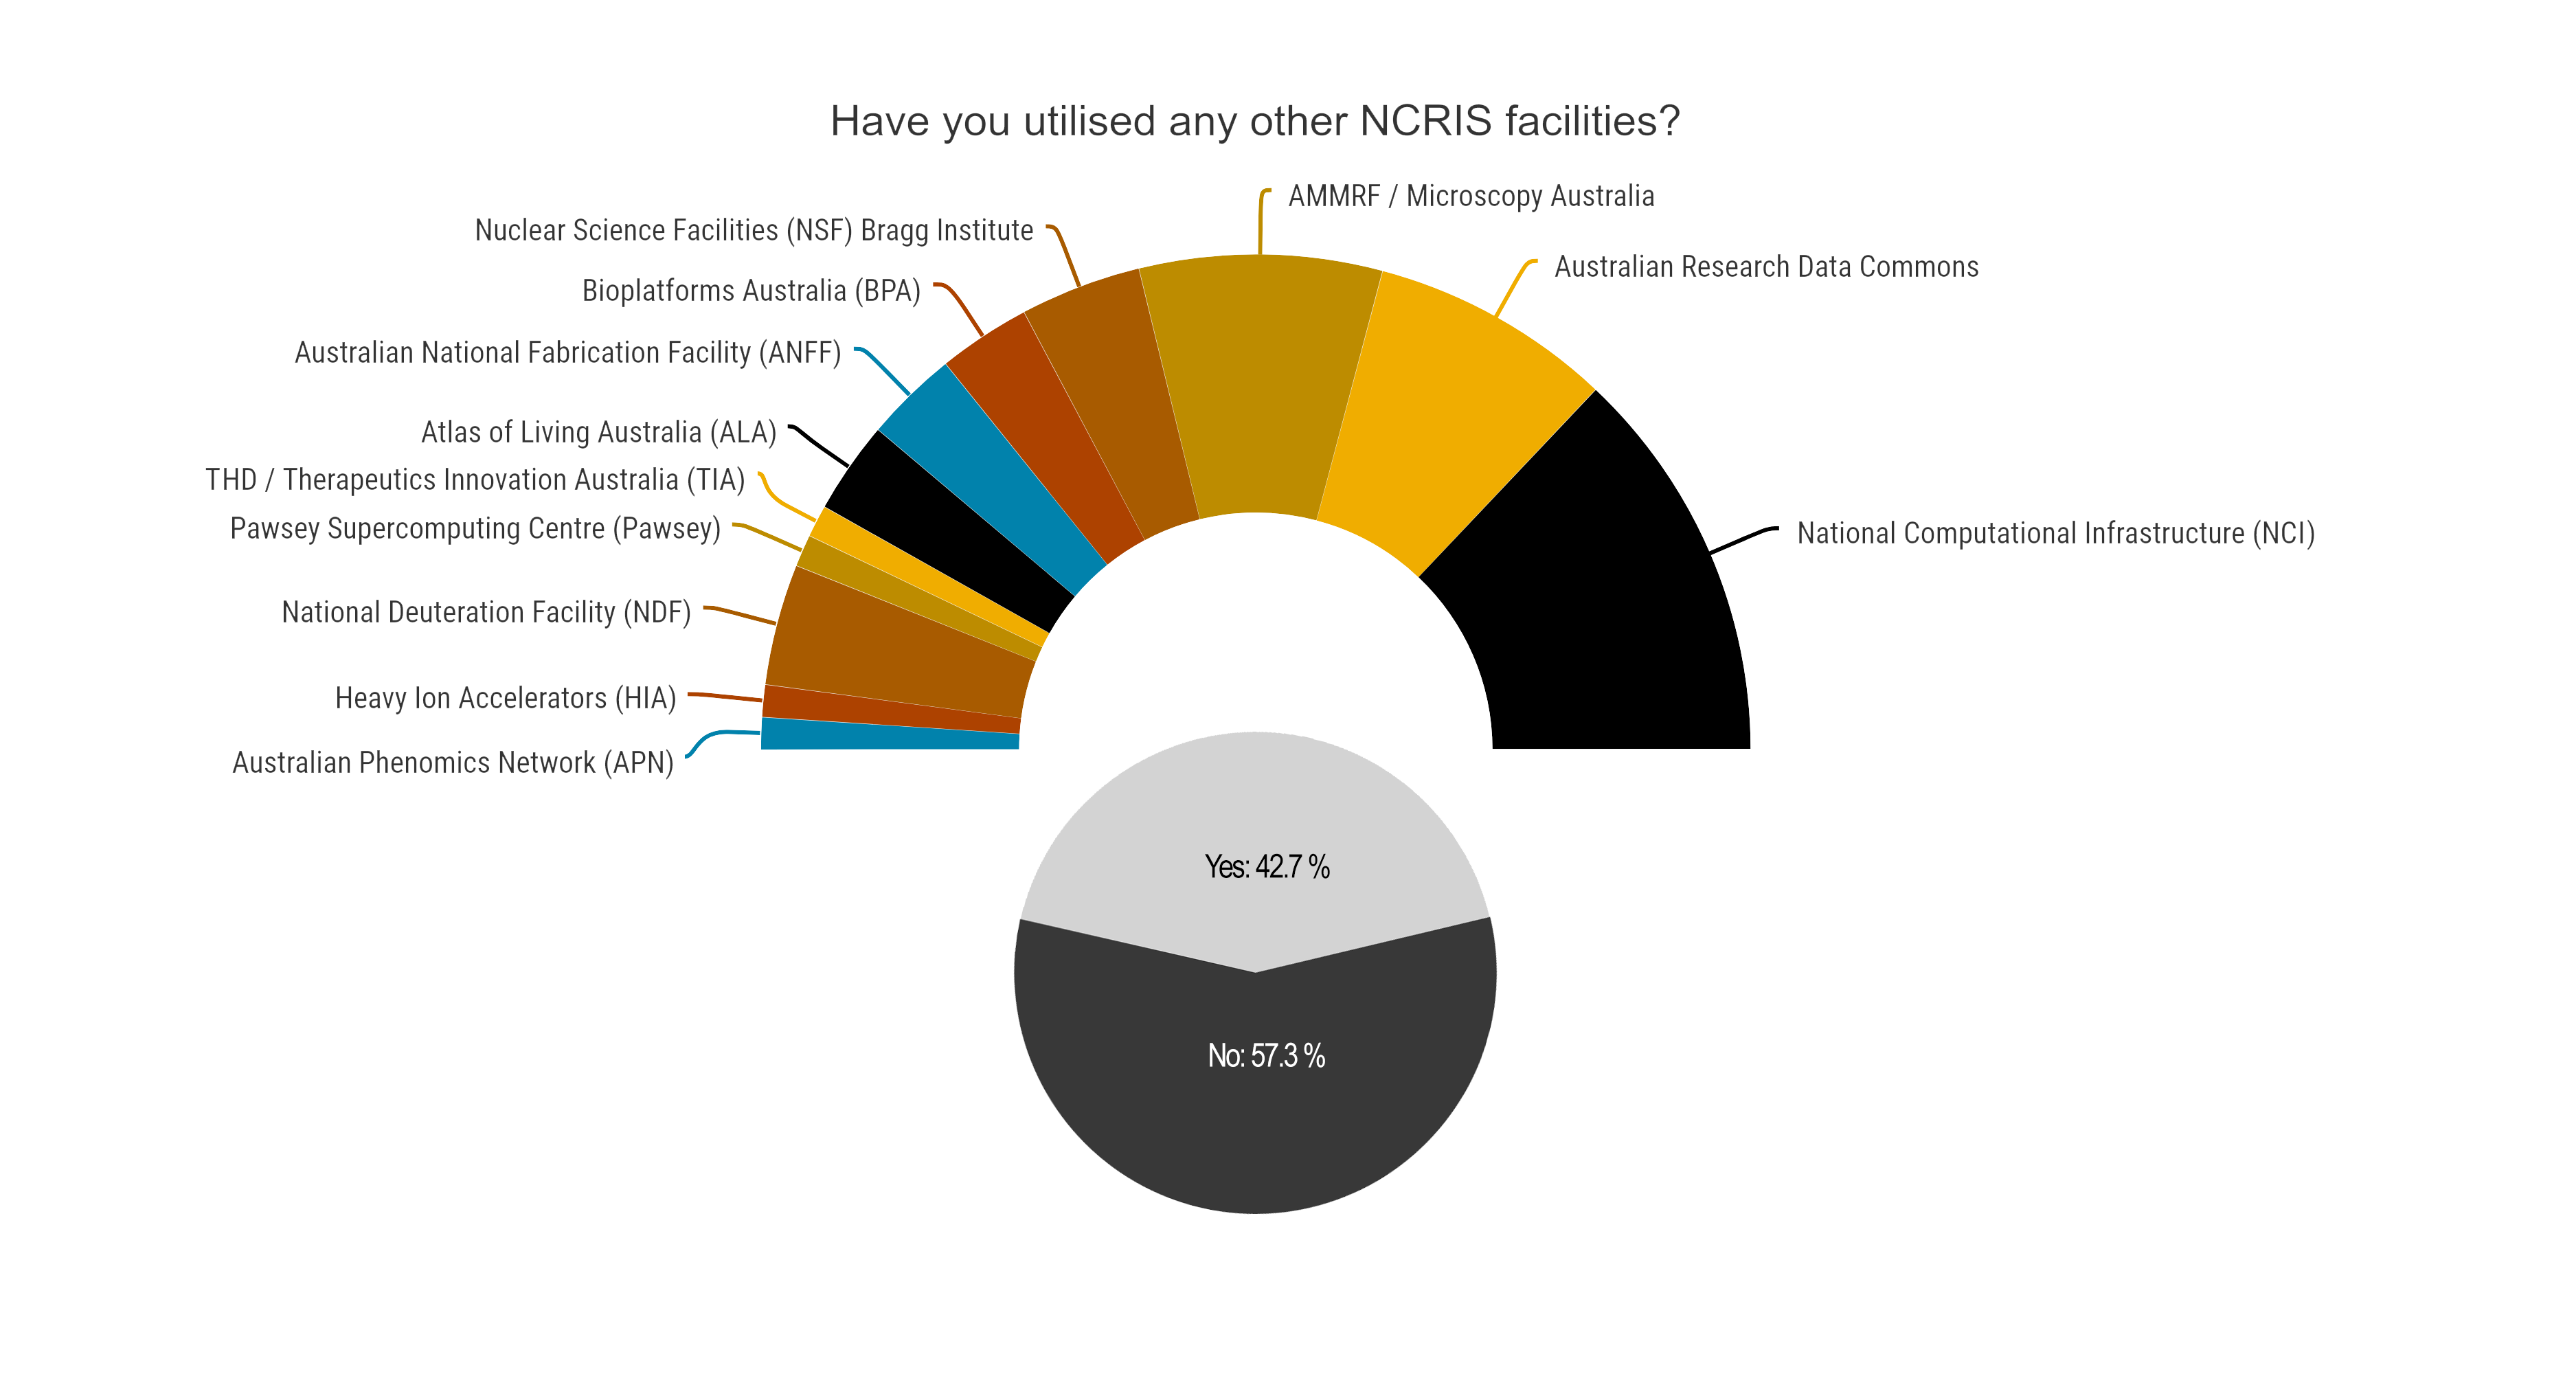 pie chart showing 43% of respondents had utilised other NCRIS facilities, with a gauge chart breakdown of those facilities